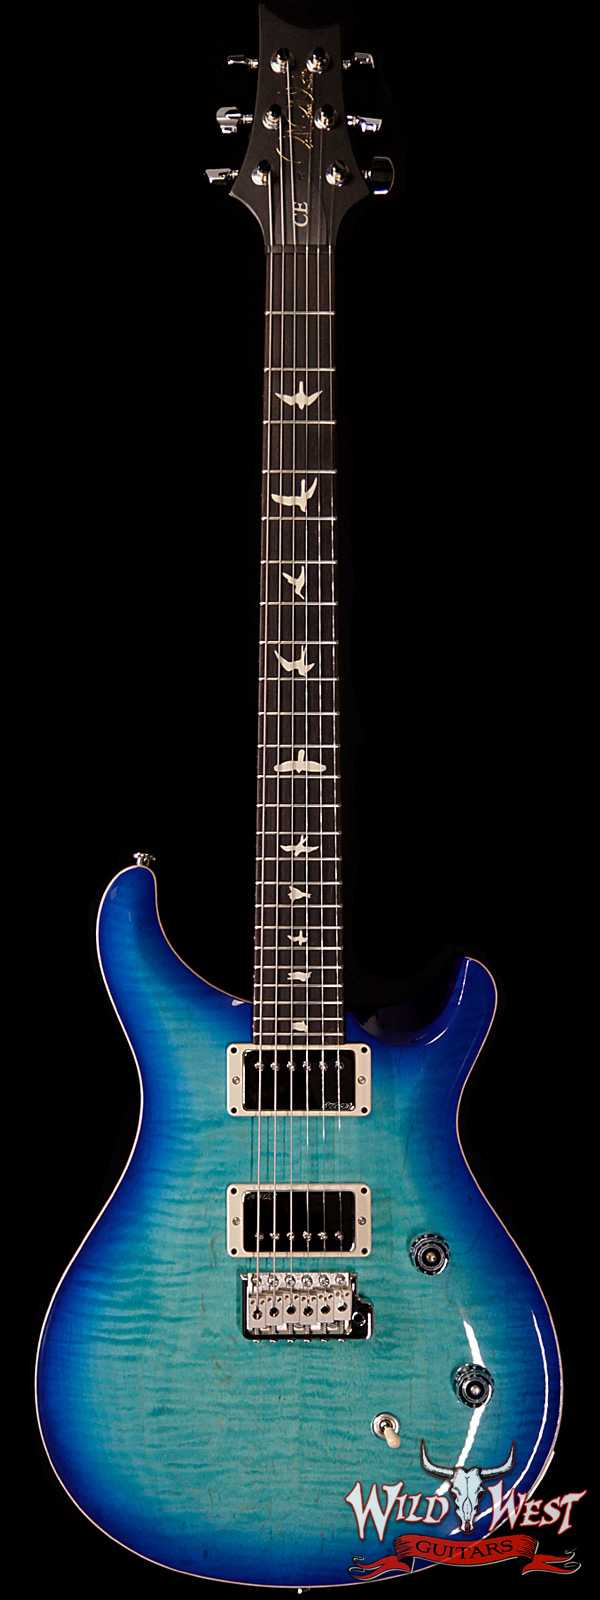 Paul Reed Smith PRS Wild West Guitars Special Run CE 24 Flame Top Painted Neck 57/08 Pickups Makena Blue 288743